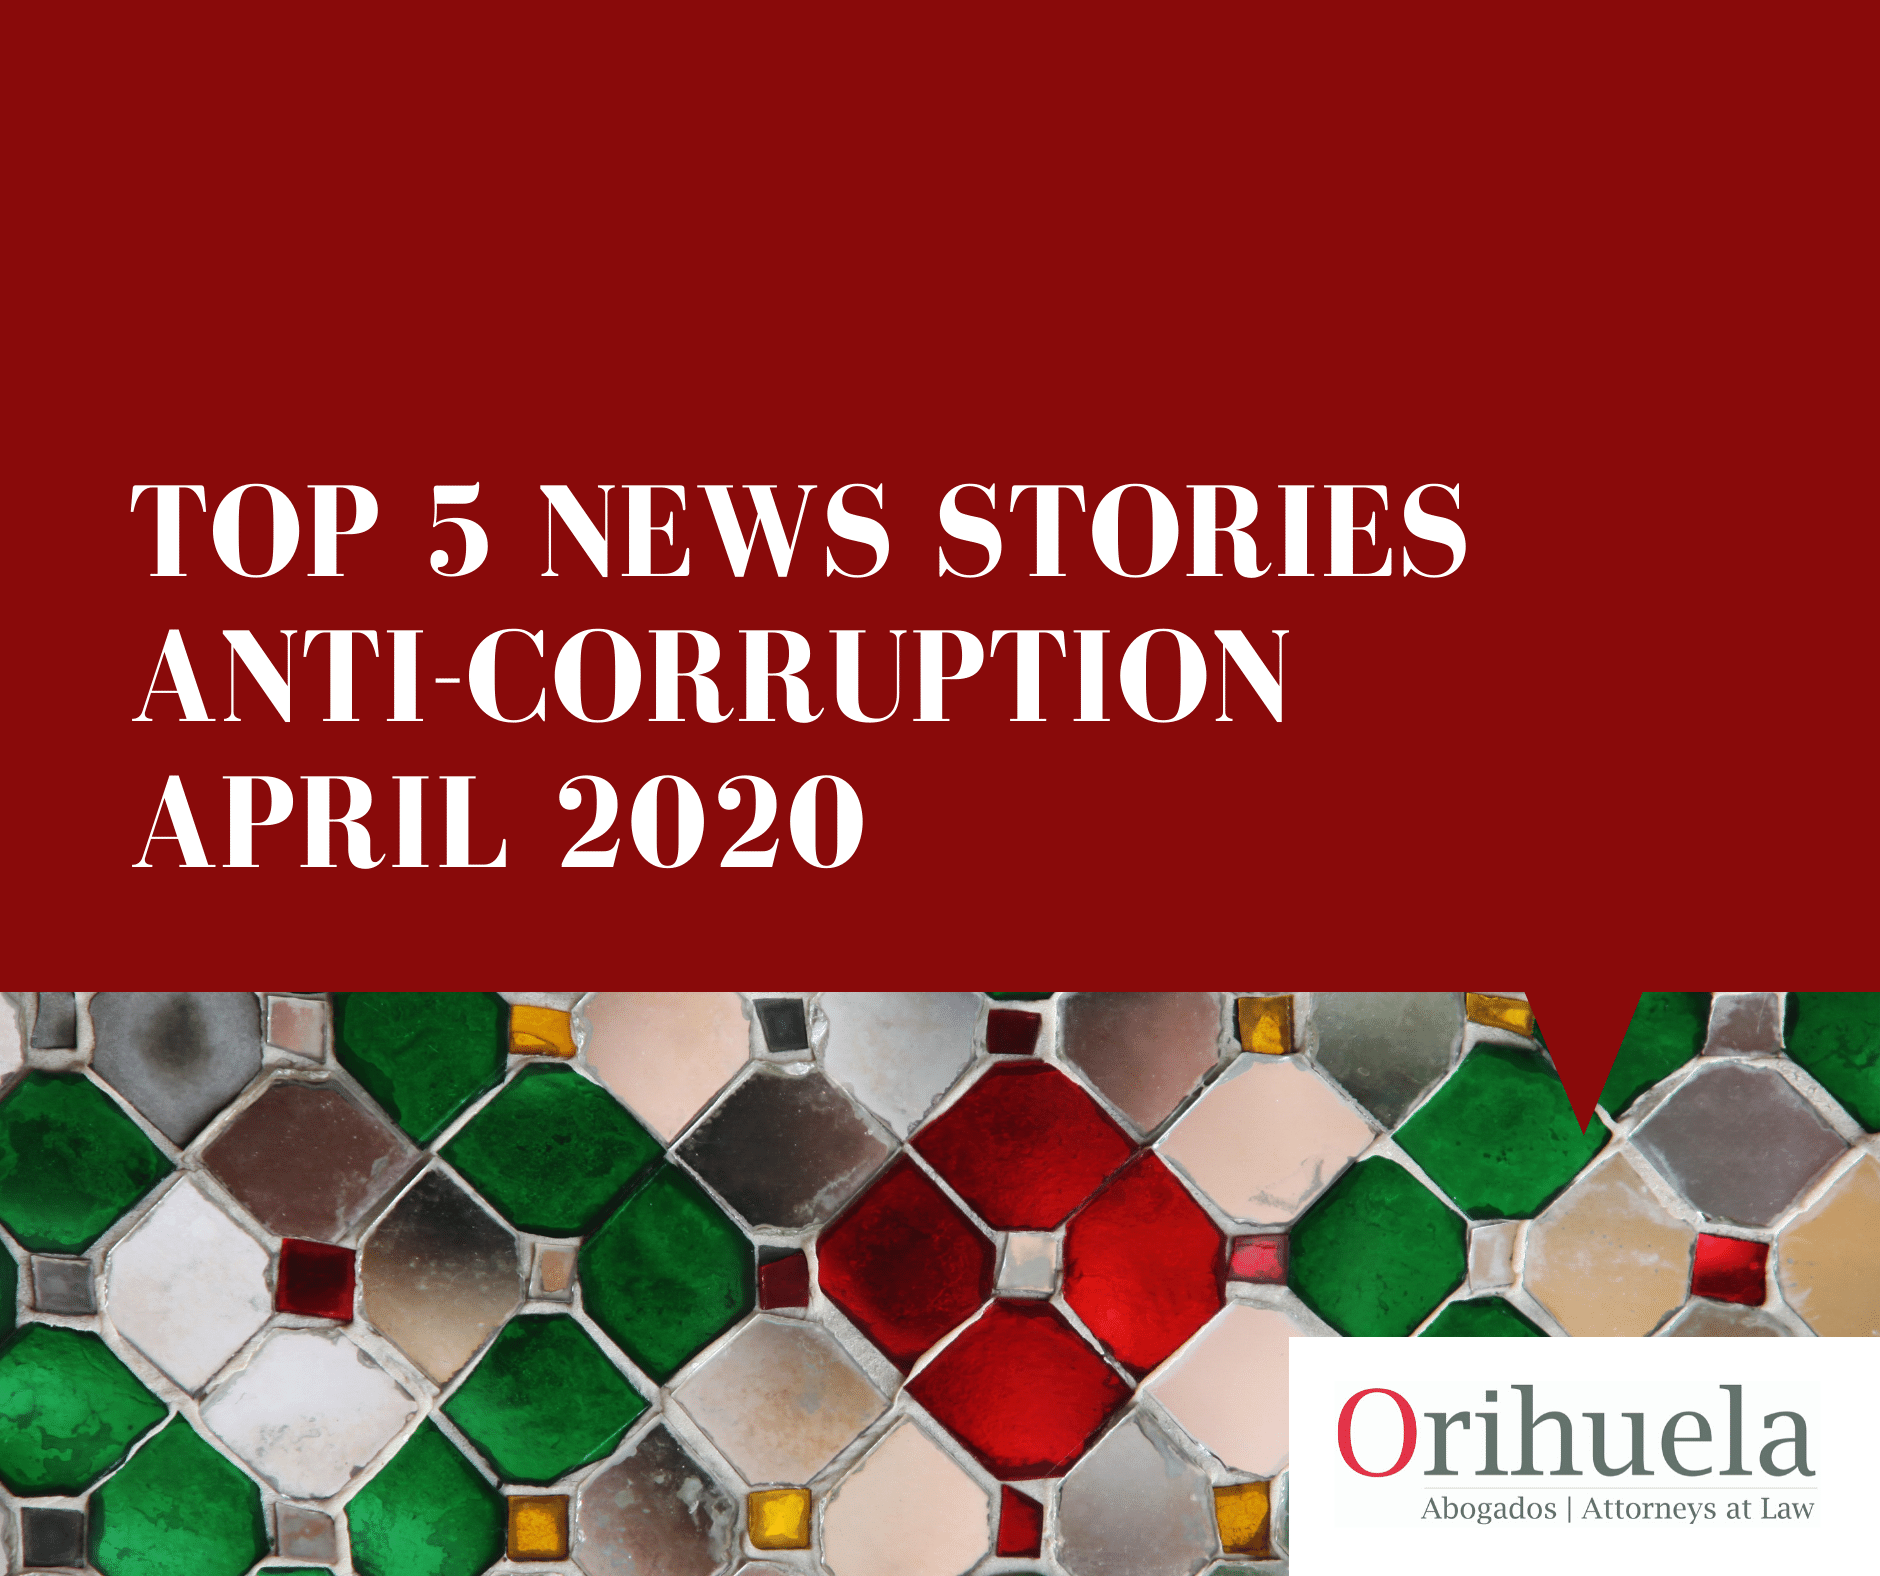 Our top 5 anti-corruption news stories – April 2020